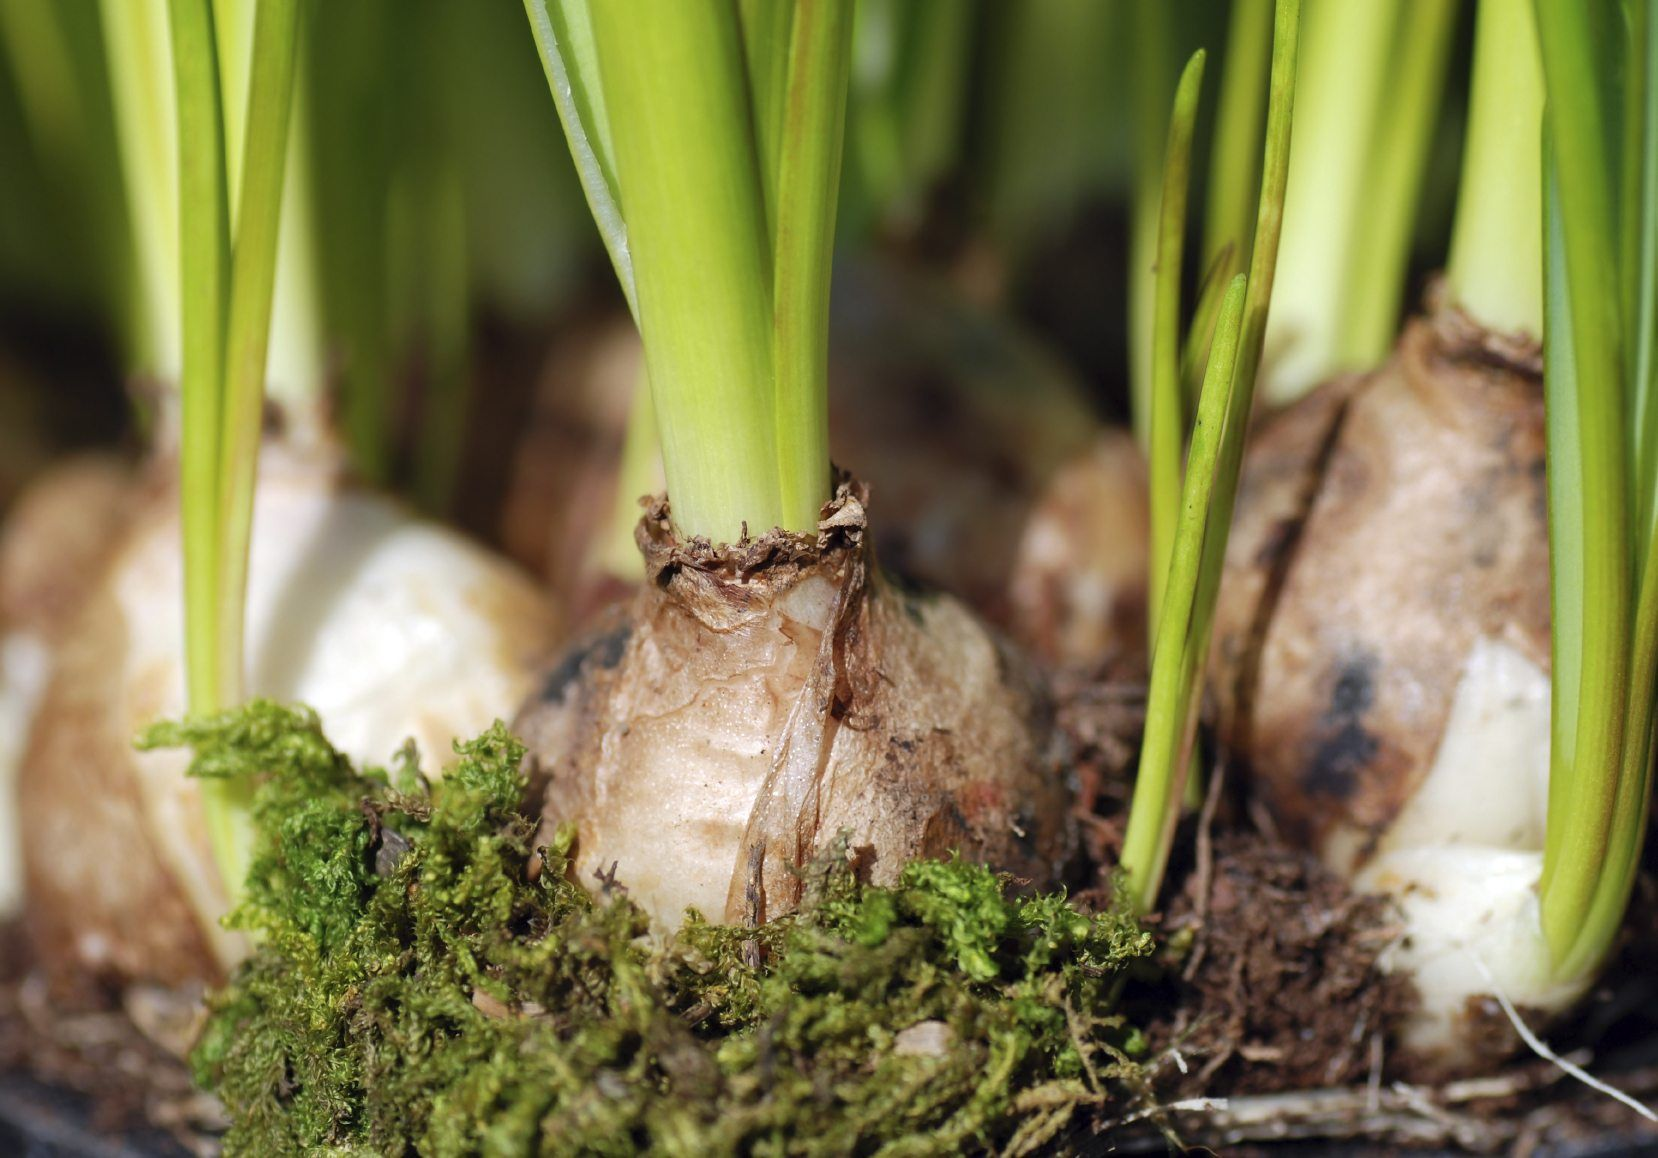 Digging grape hyacinths how to store hyacinth bulbs after